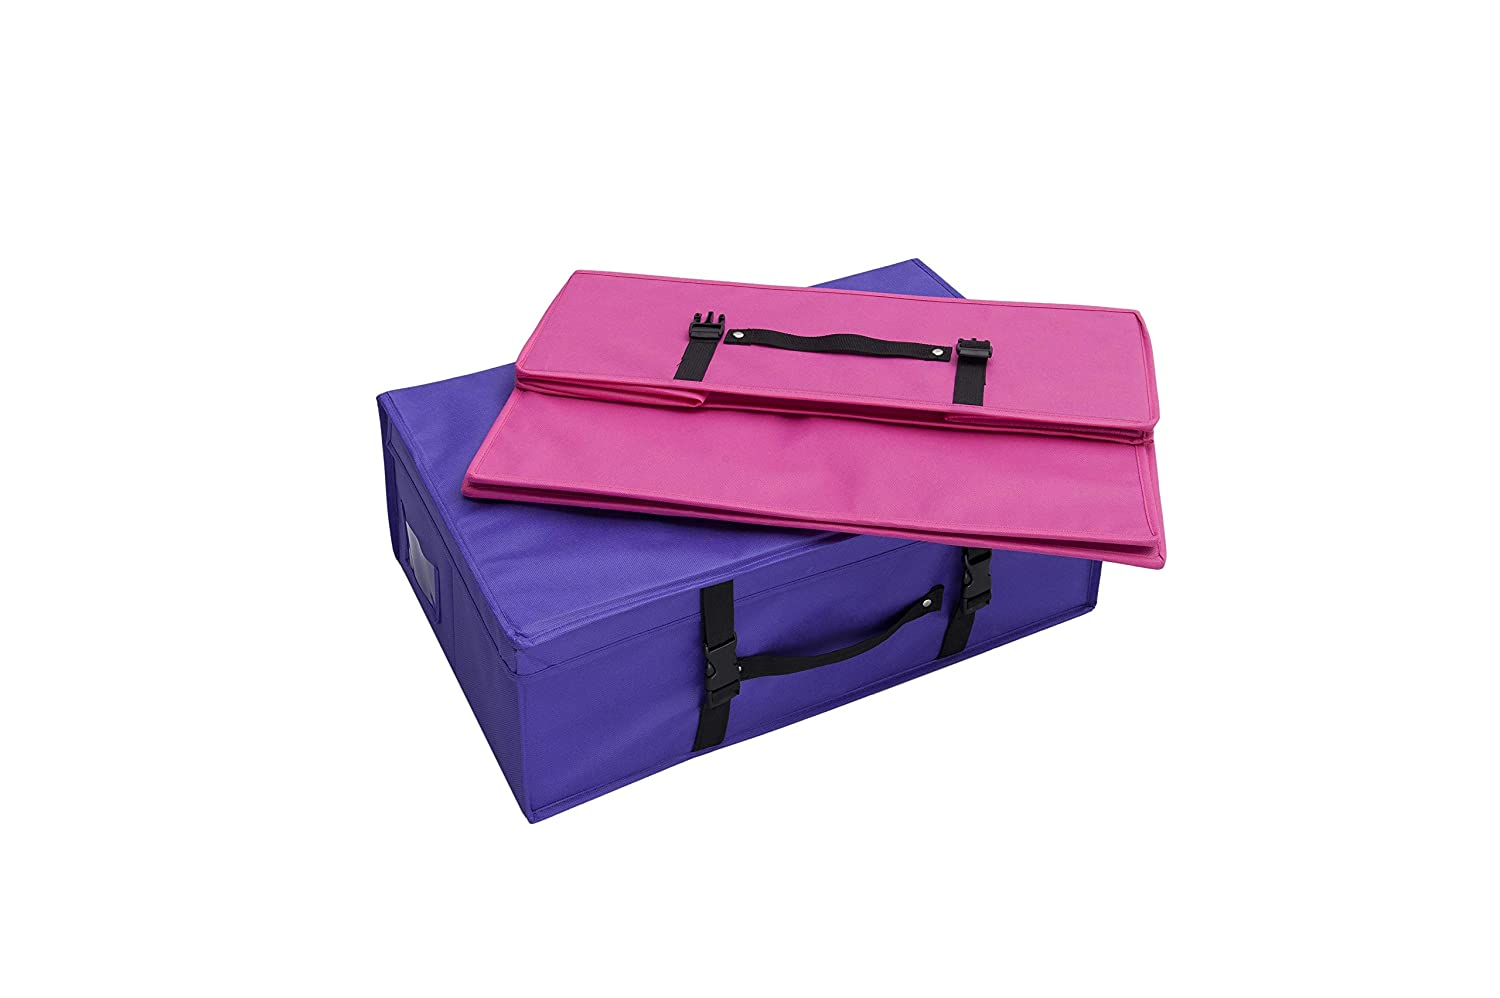 (Pink) - Wedding Dress Bridal Storage and Travel Box - Foldable, pH neutral, water resistant (Pink) B06XP4YXN6 ピンク